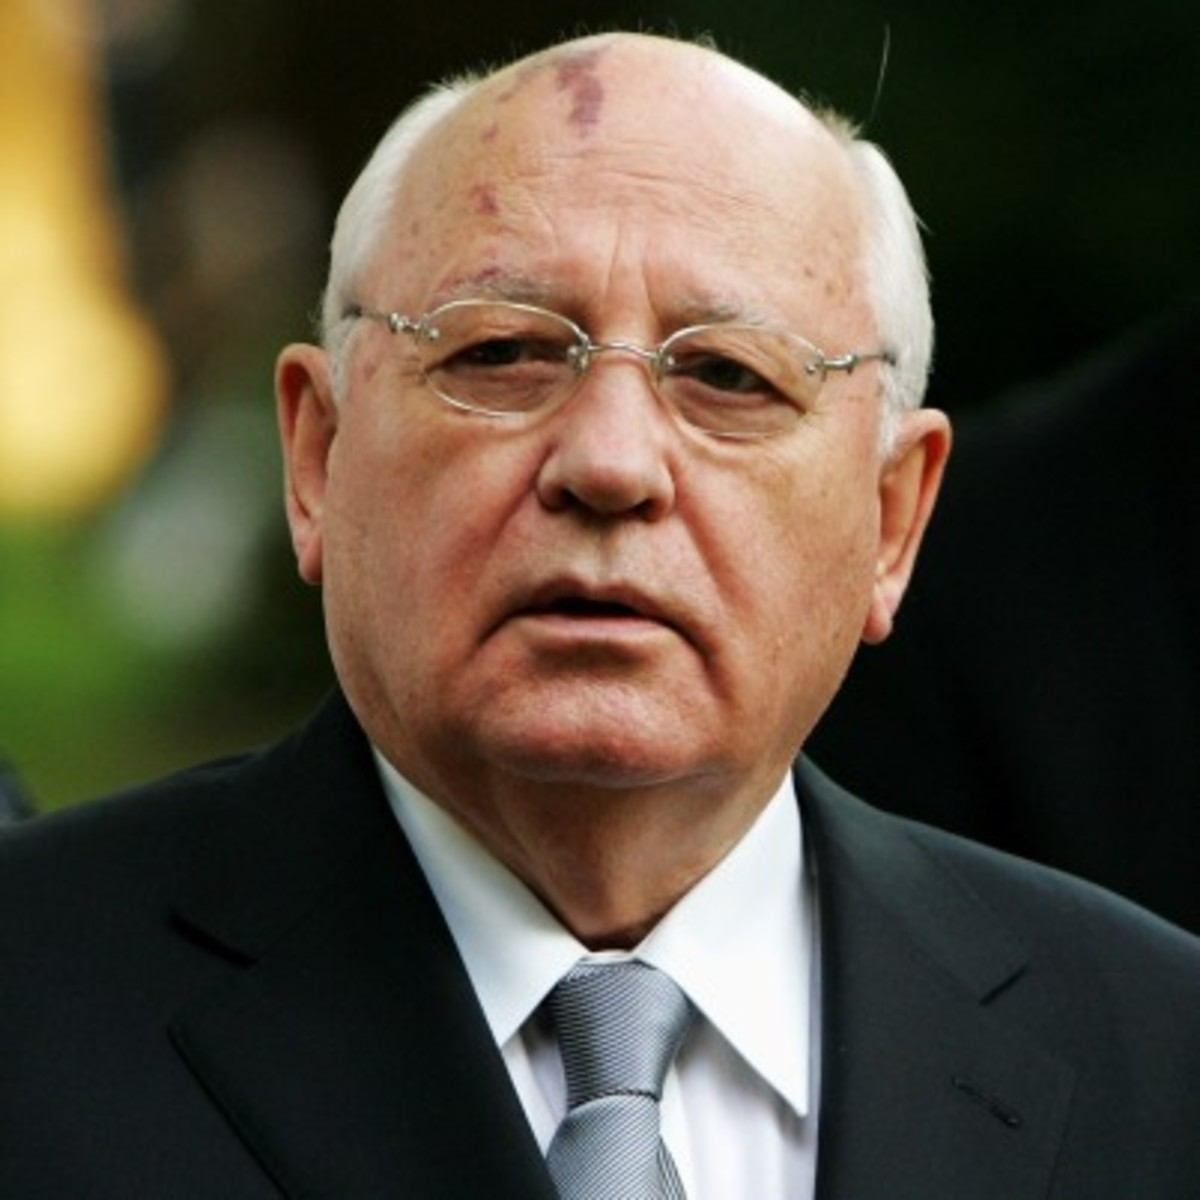 Courtroom Mail History- Today in 1992 Gorbachev reviews the Cold War